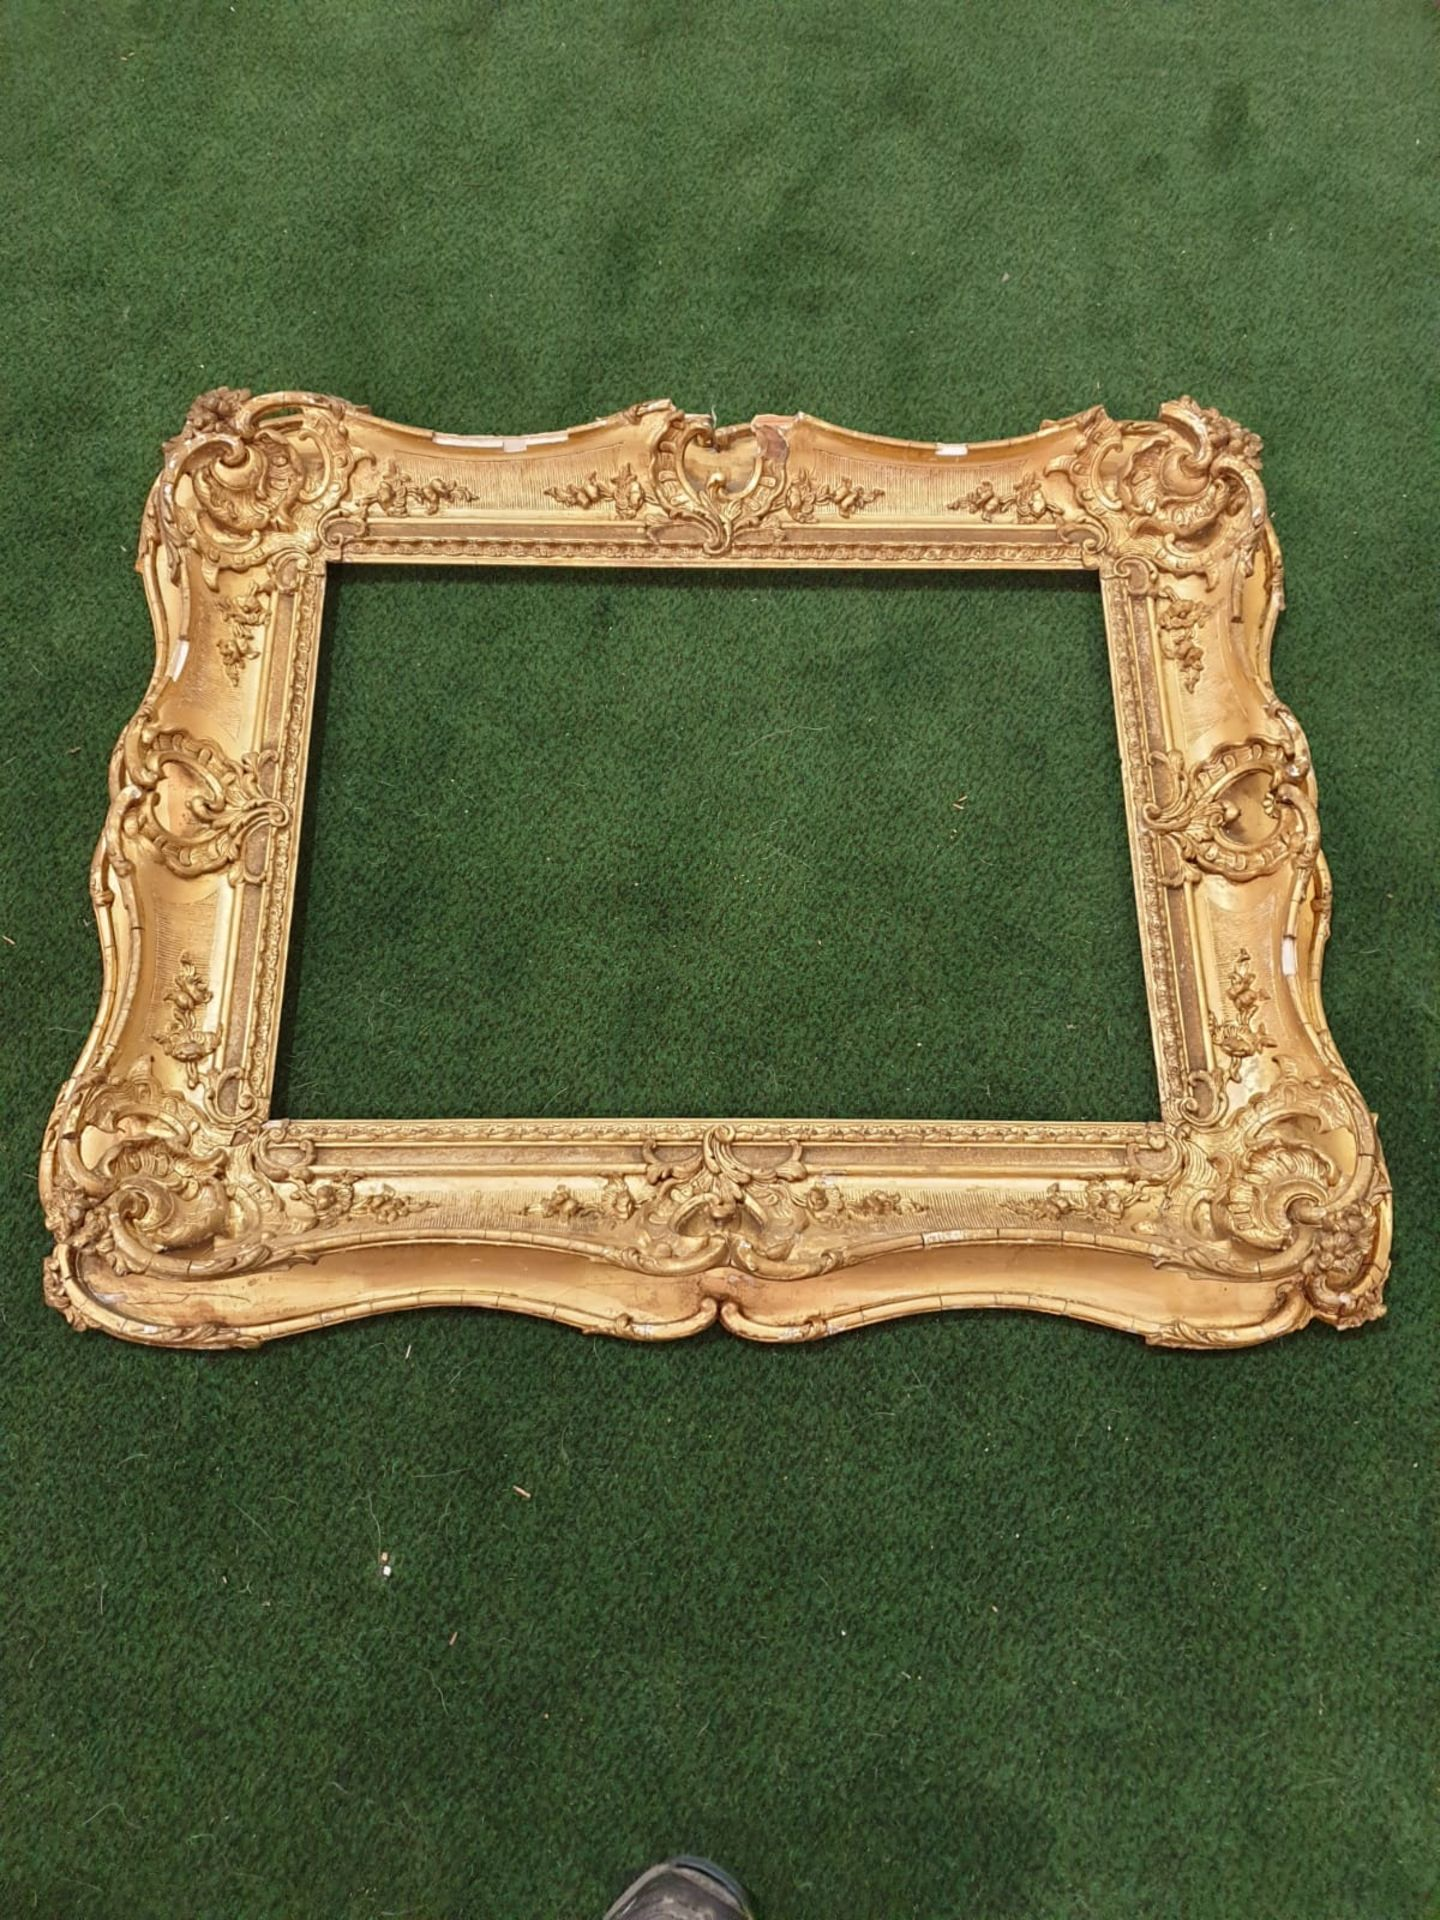 Gesso picture frame 89 x 75cm